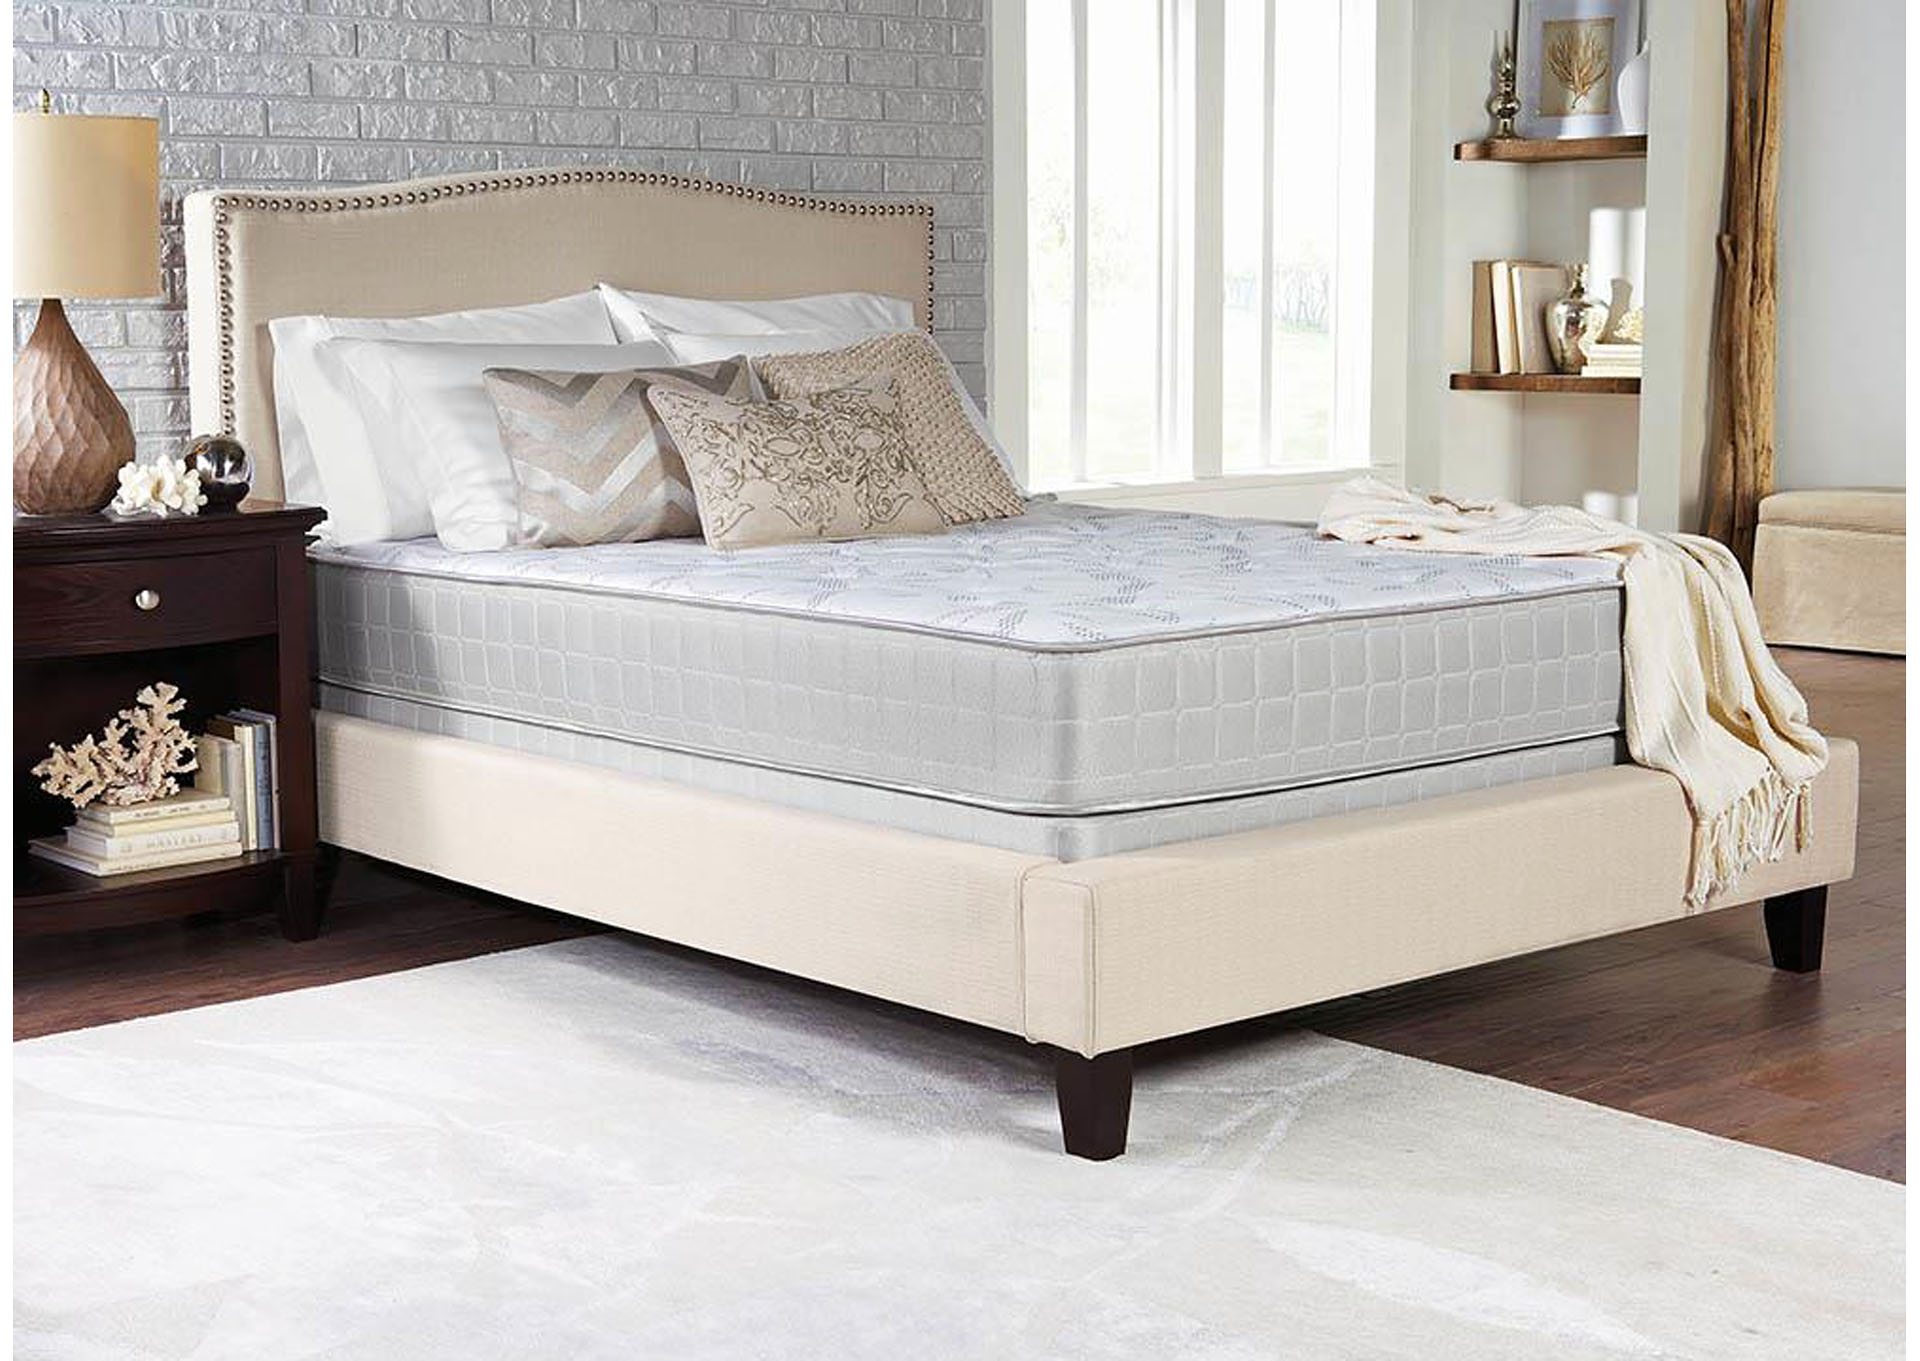 Crystal Cove Plush Queen Mattress,ABF Coaster Furniture